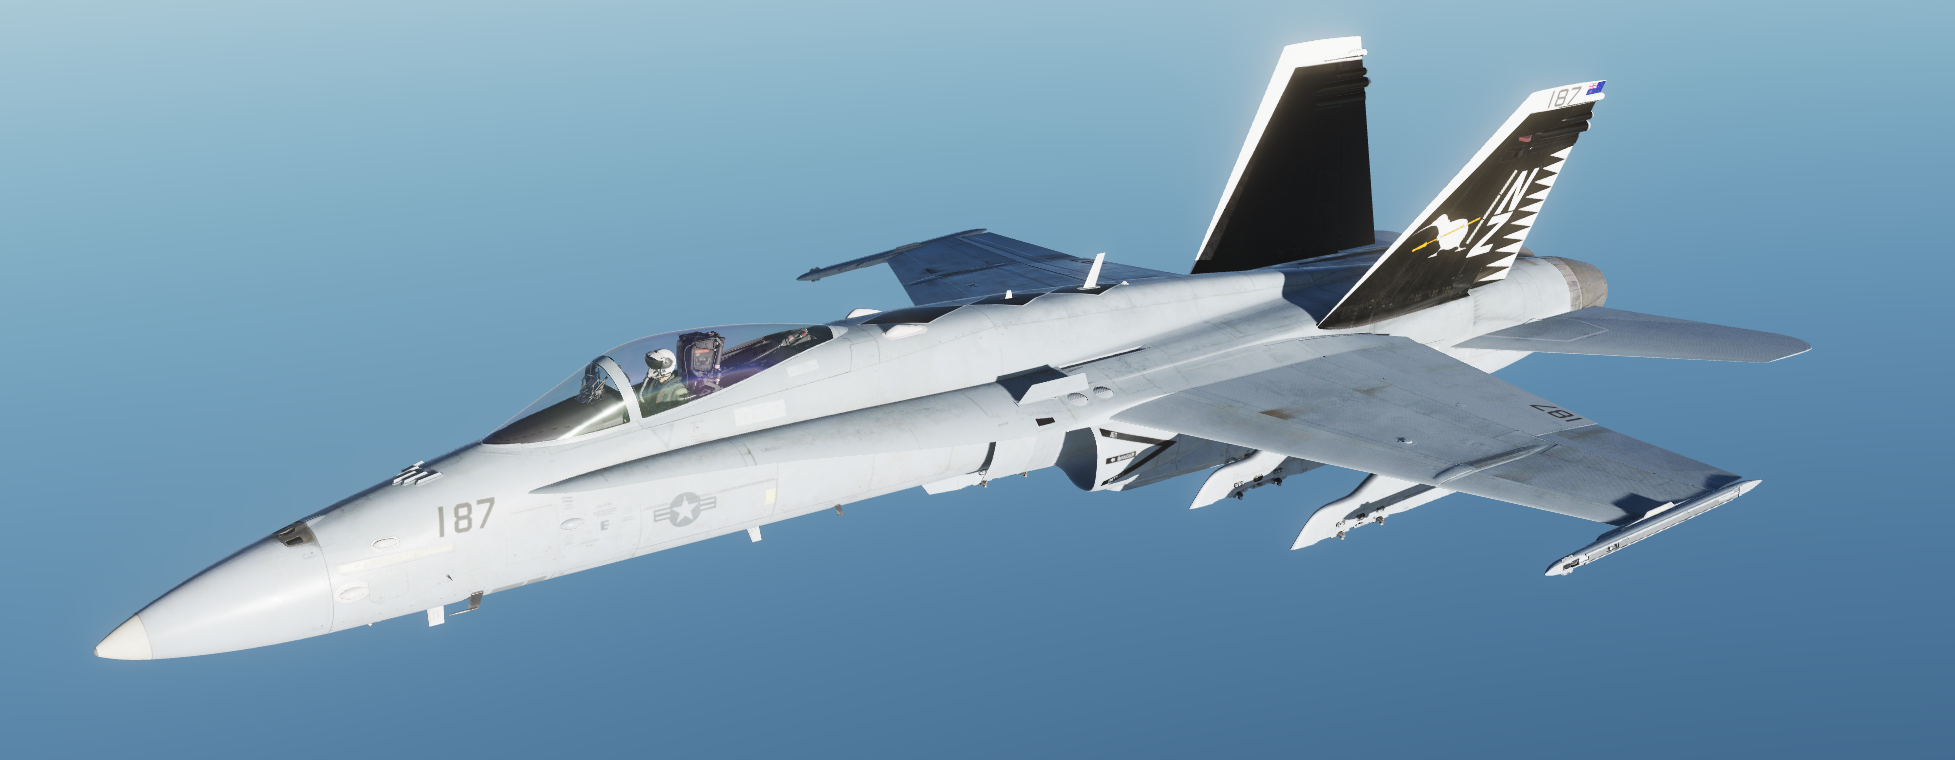 "Official ""The Flying Kiwis"" F/A-18C Hi Vis livery by Rhino"